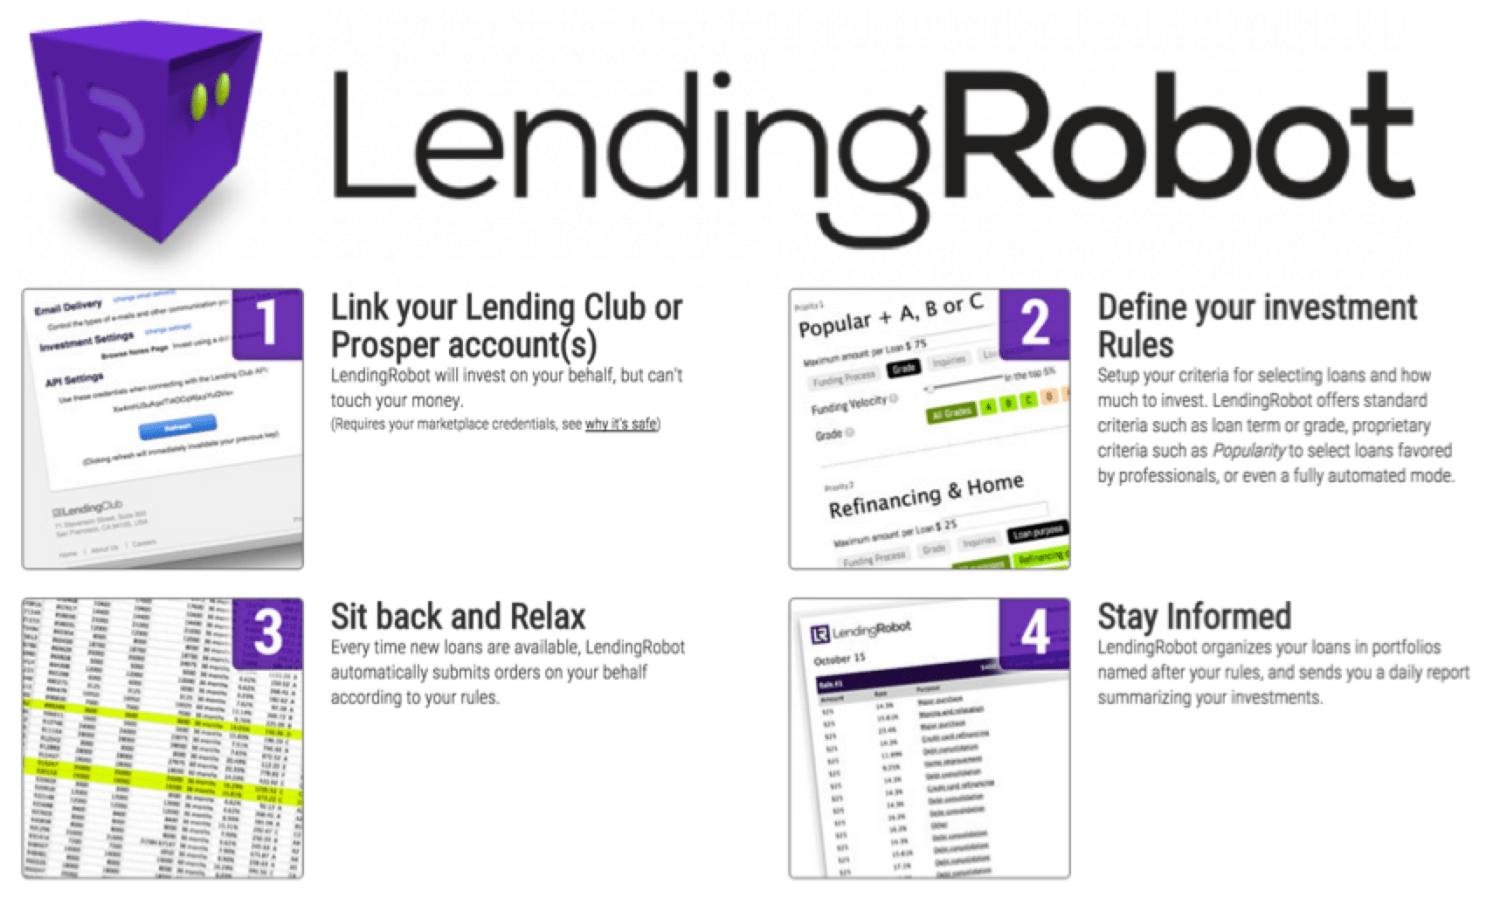 Lendingrobot finno machine based investing in peer to peer lending